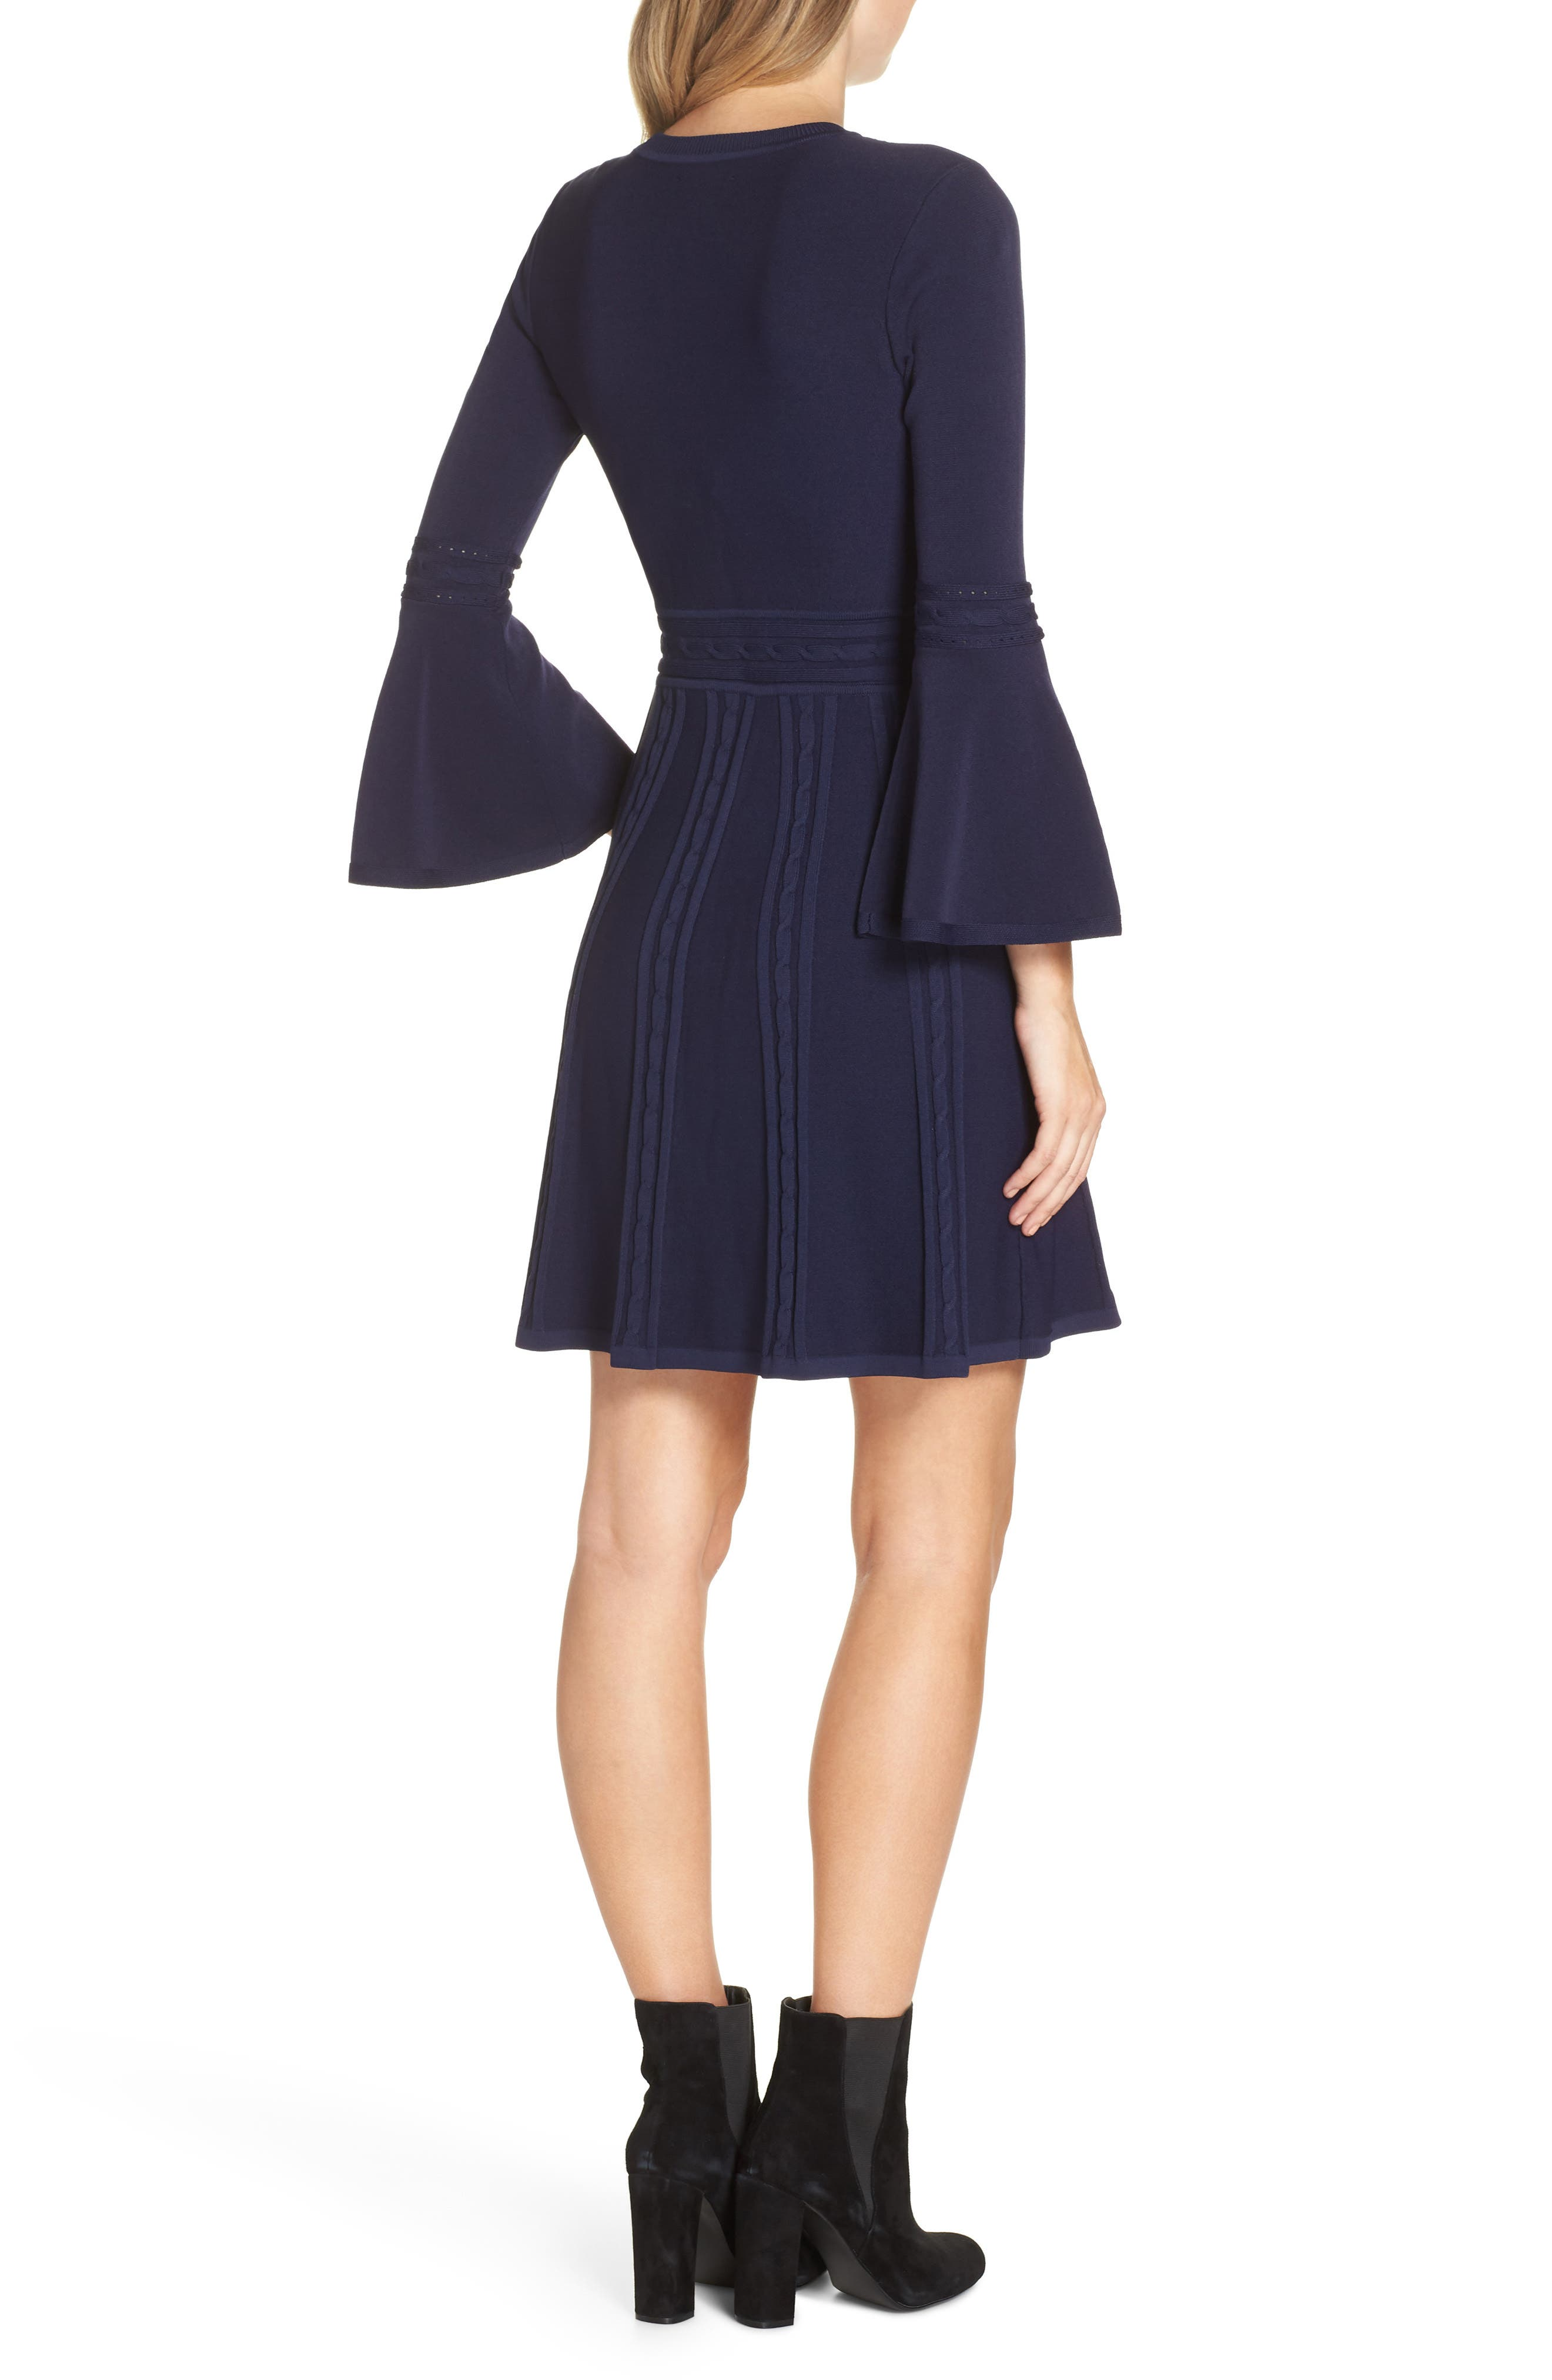 ELIZA J, Bell Sleeve Sweater Dress, Alternate thumbnail 2, color, 410